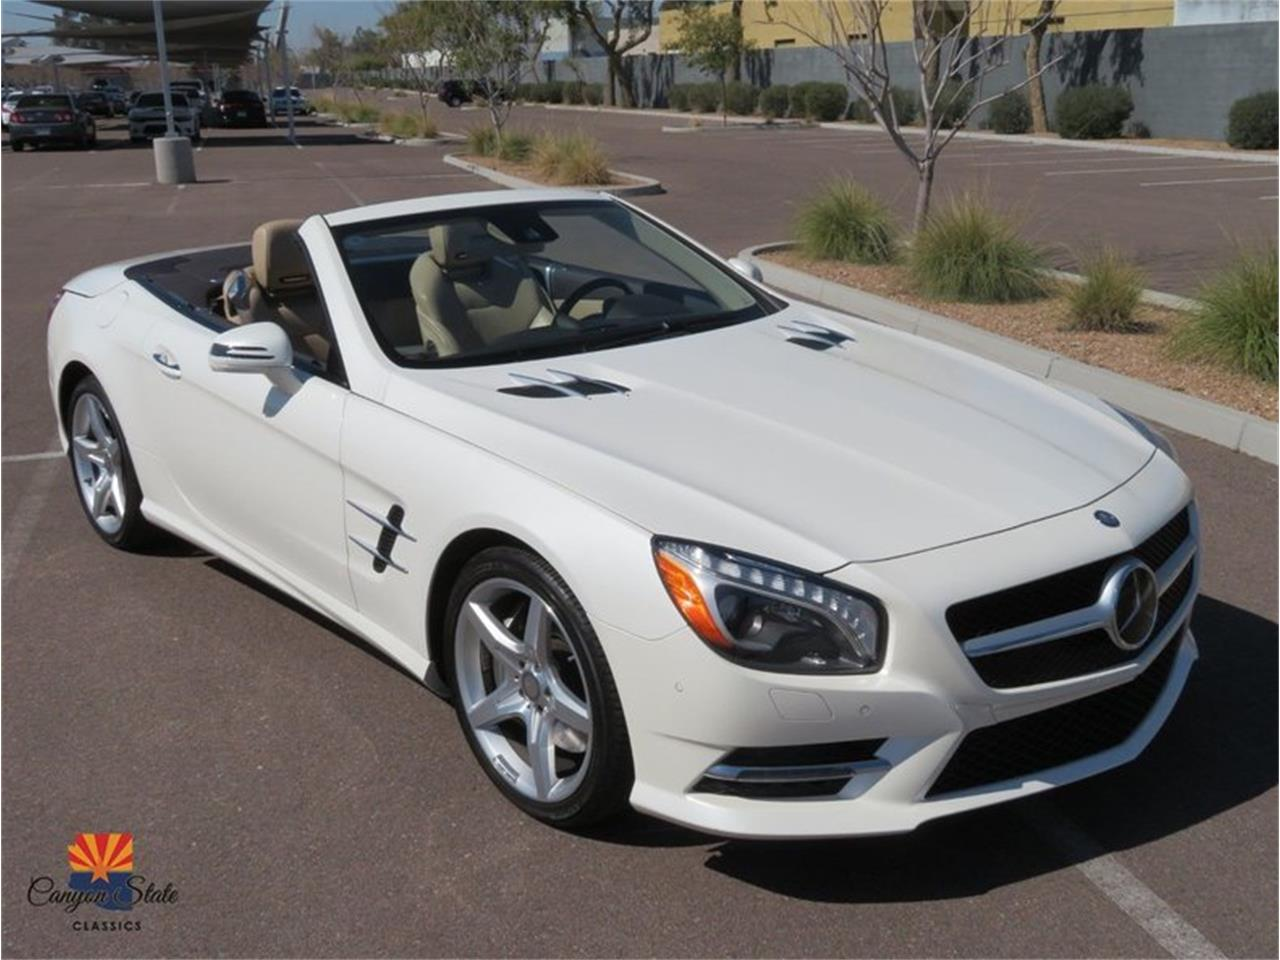 2013 Mercedes-Benz SL-Class for sale in Tempe, AZ – photo 39